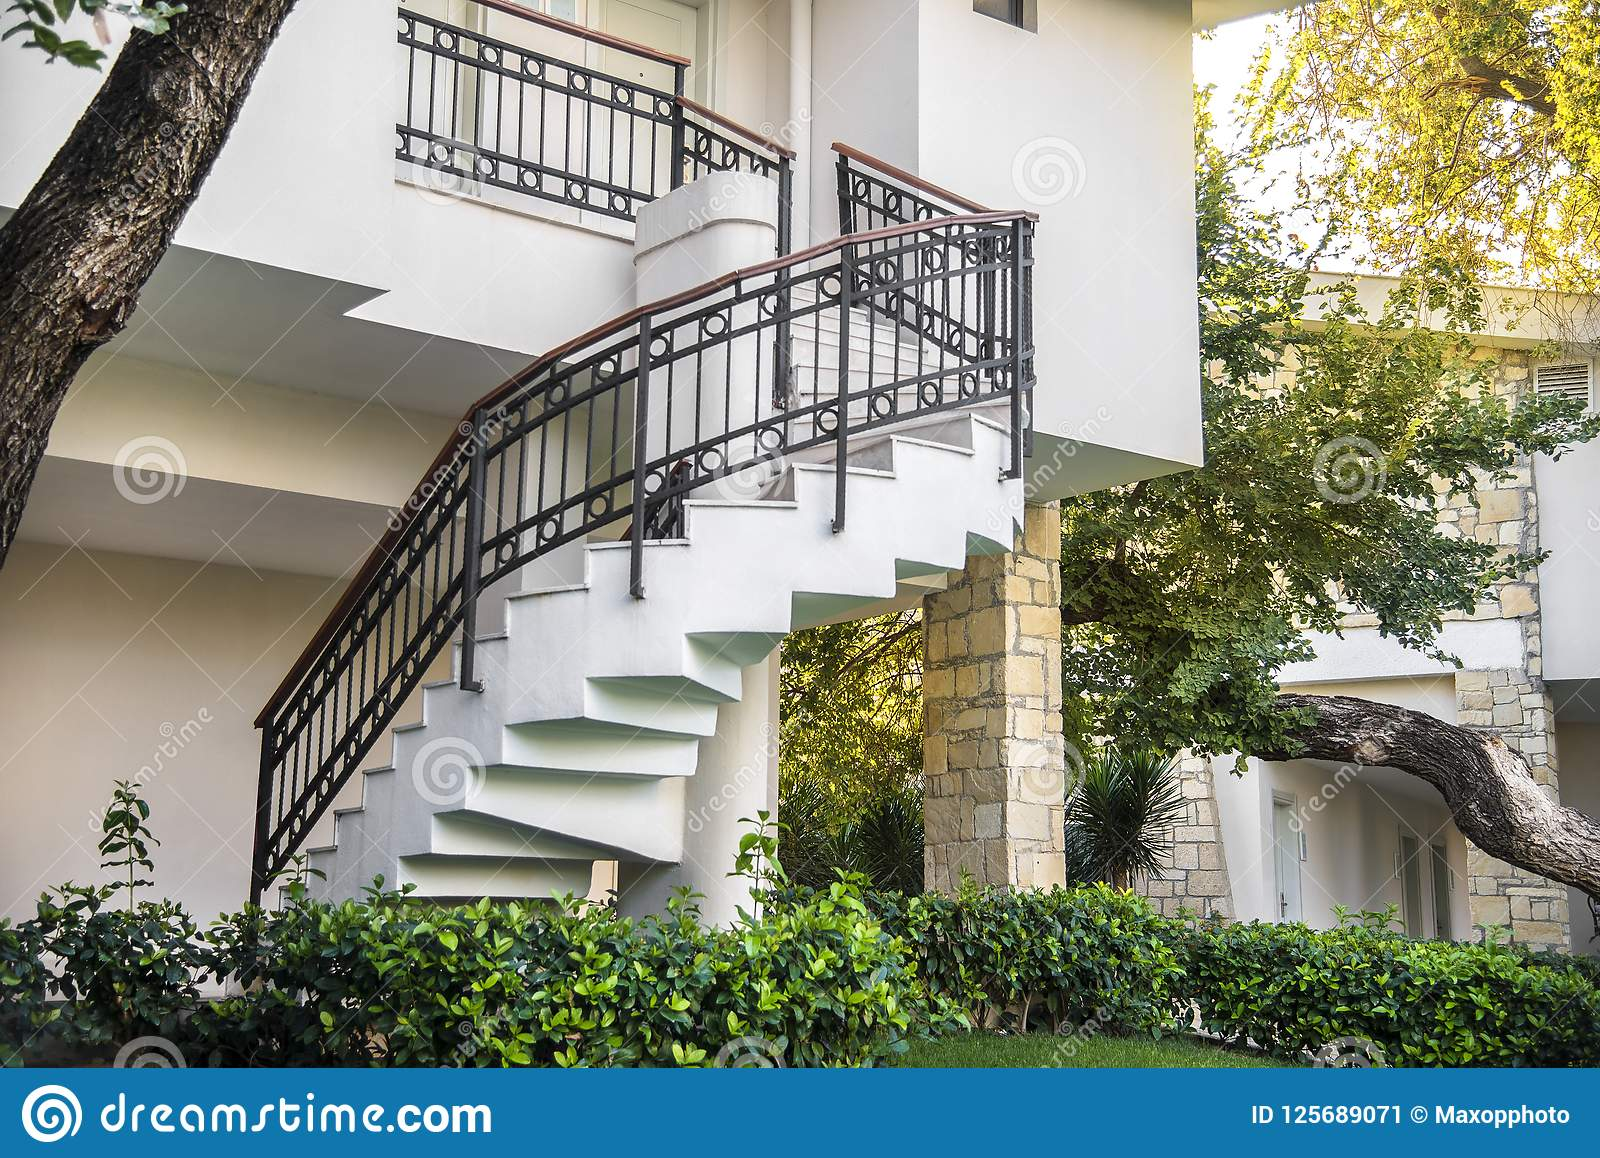 4 009 Outdoor Steel Staircase Photos Free Royalty Free Stock Photos From Dreamstime,Minimalist Korean Modern House Exterior Design